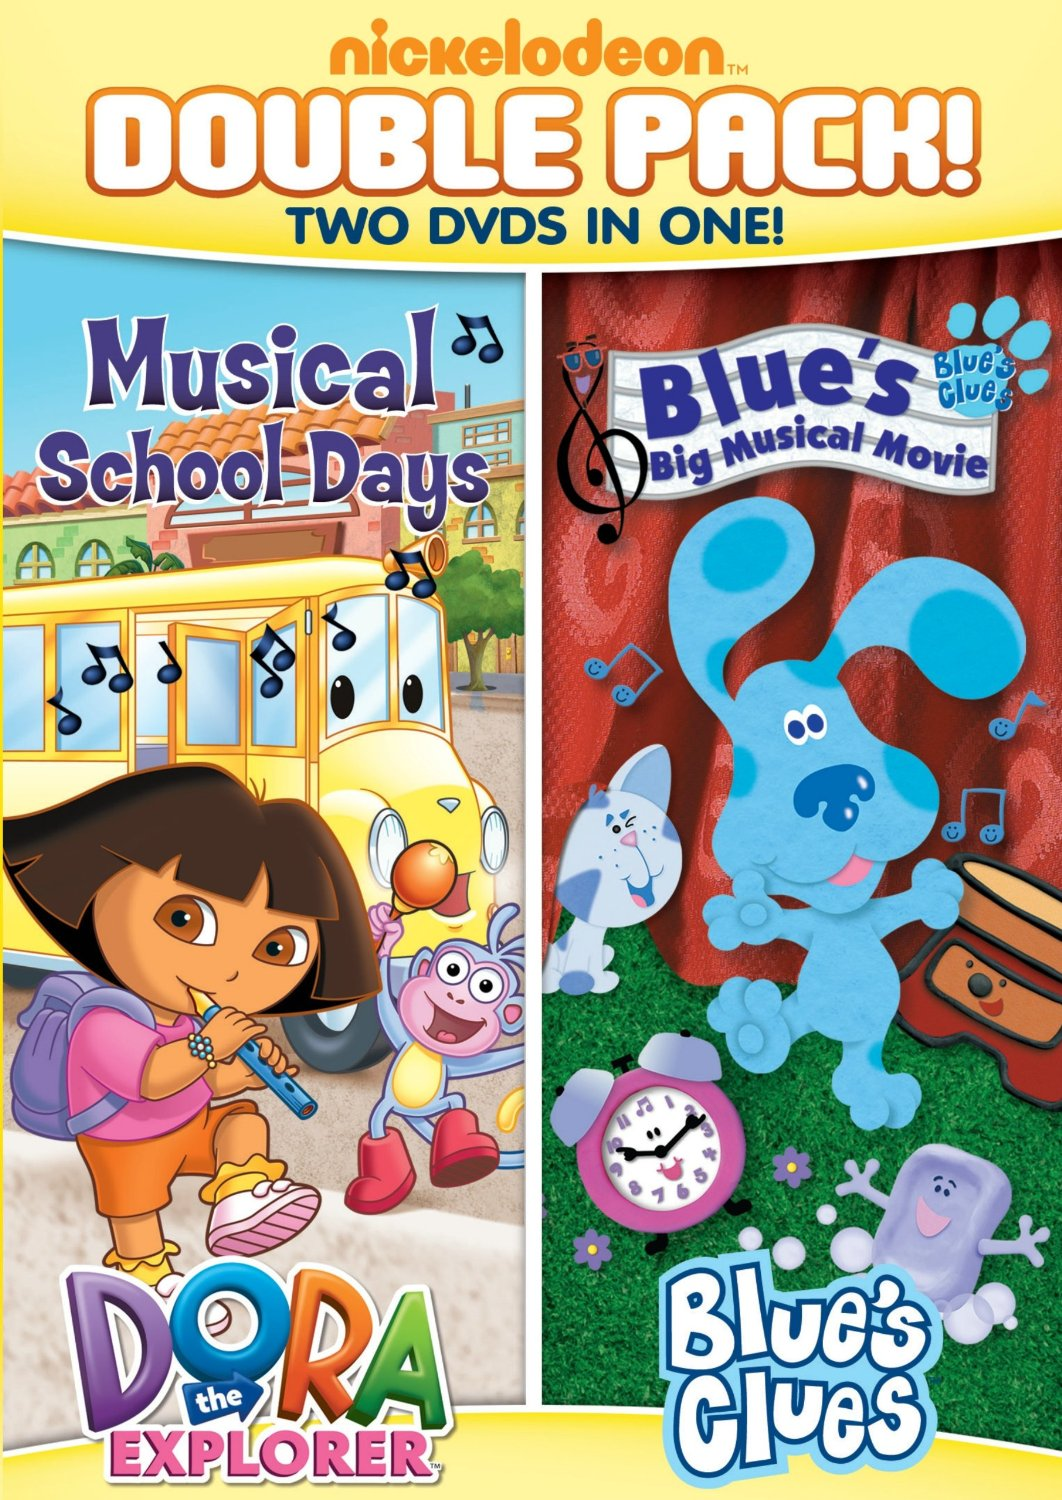 dora and blues clues dvd